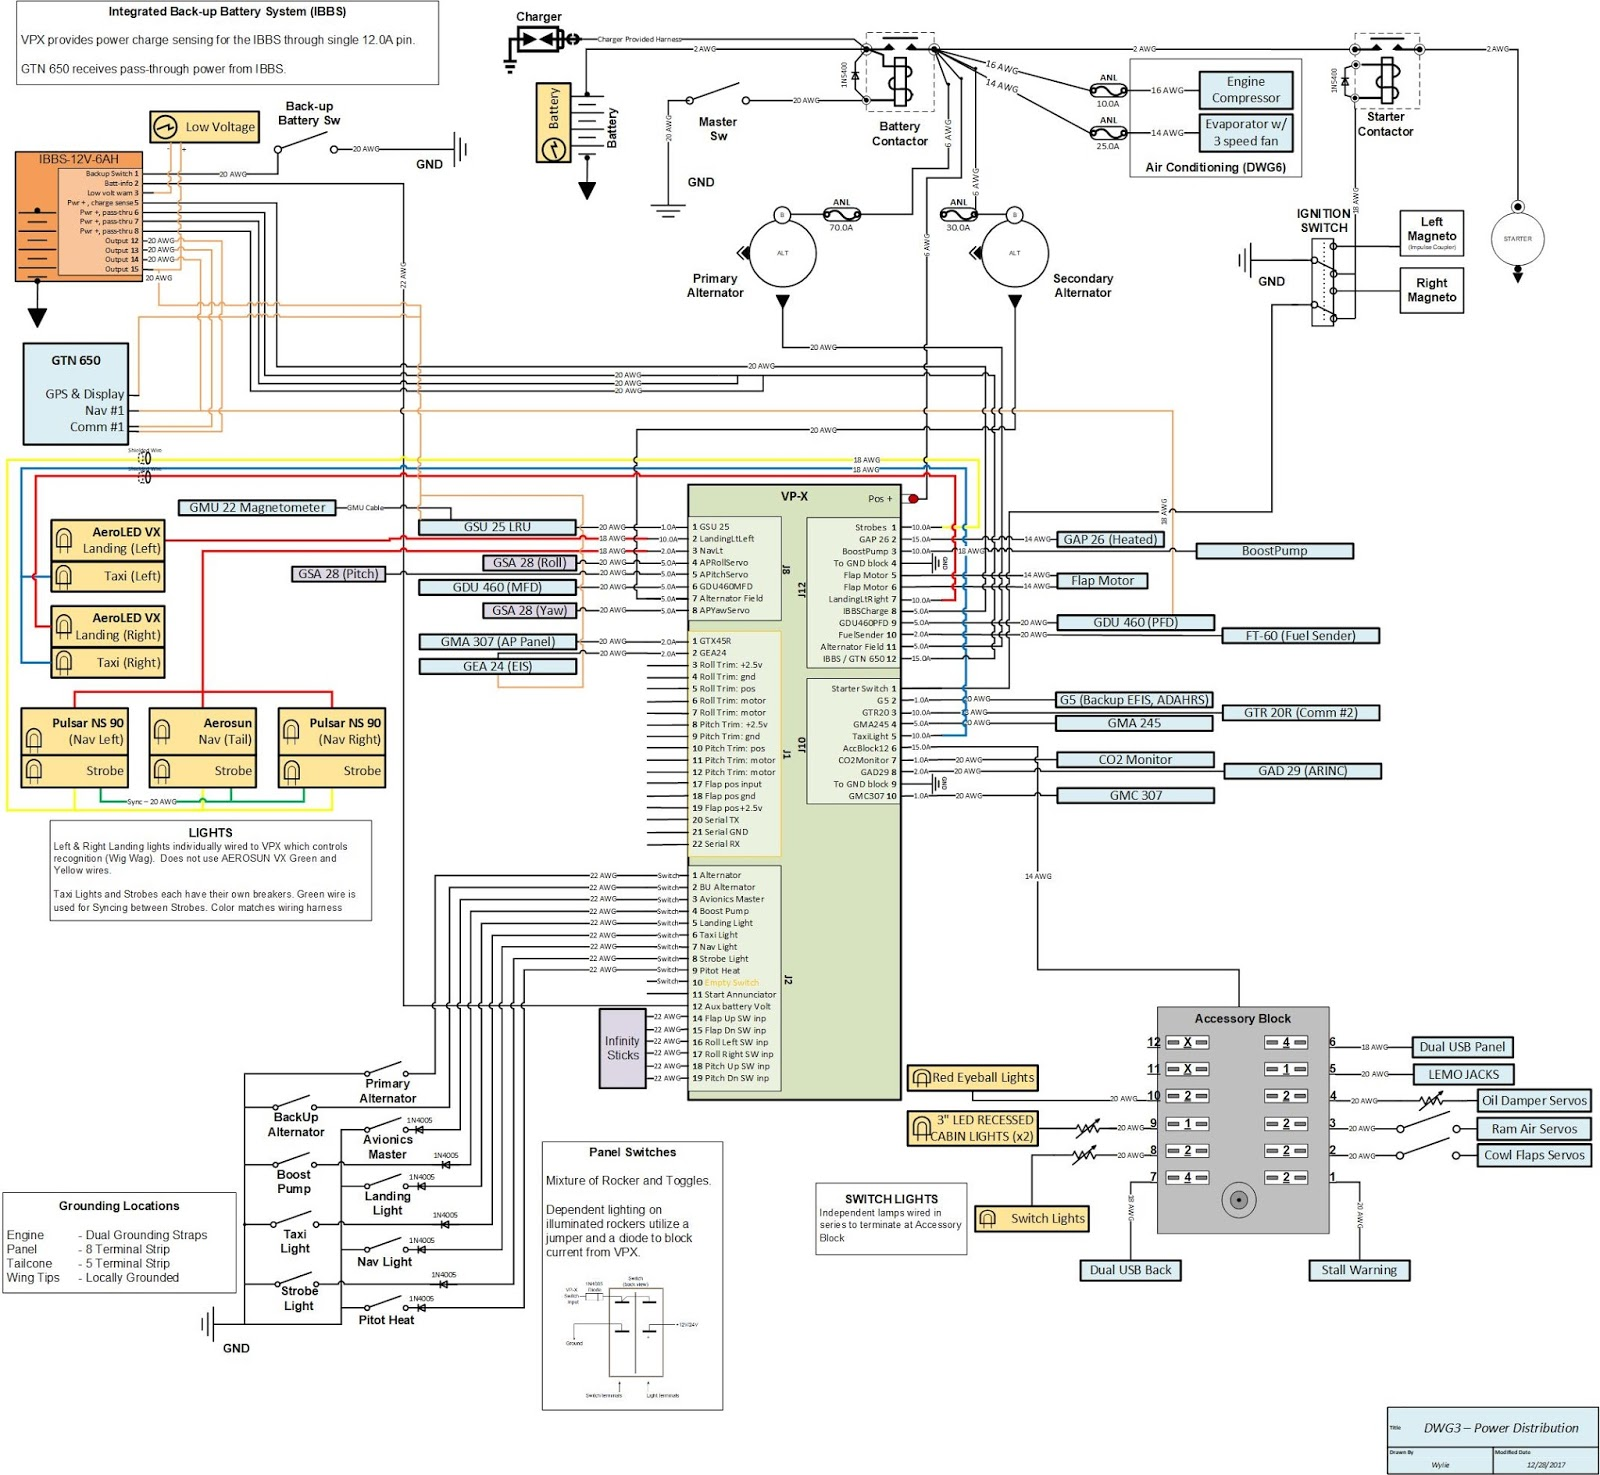 rv 10 electrical system vaf forums rv power converter wiring diagram it s been a year and [ 1600 x 1475 Pixel ]